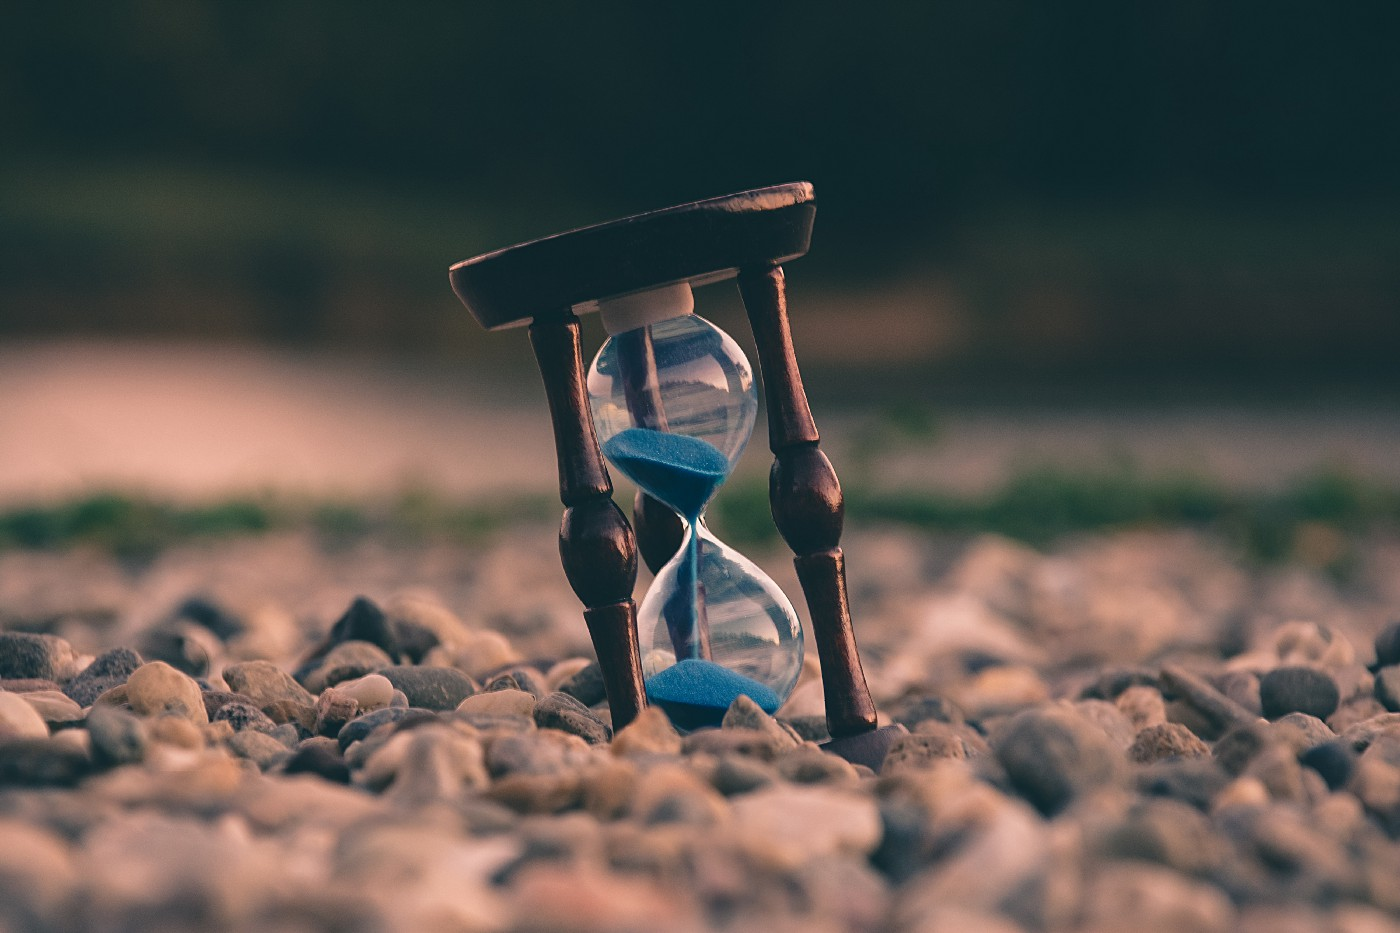 An hourglass sits among gravel as its sand pours from top to bottom.